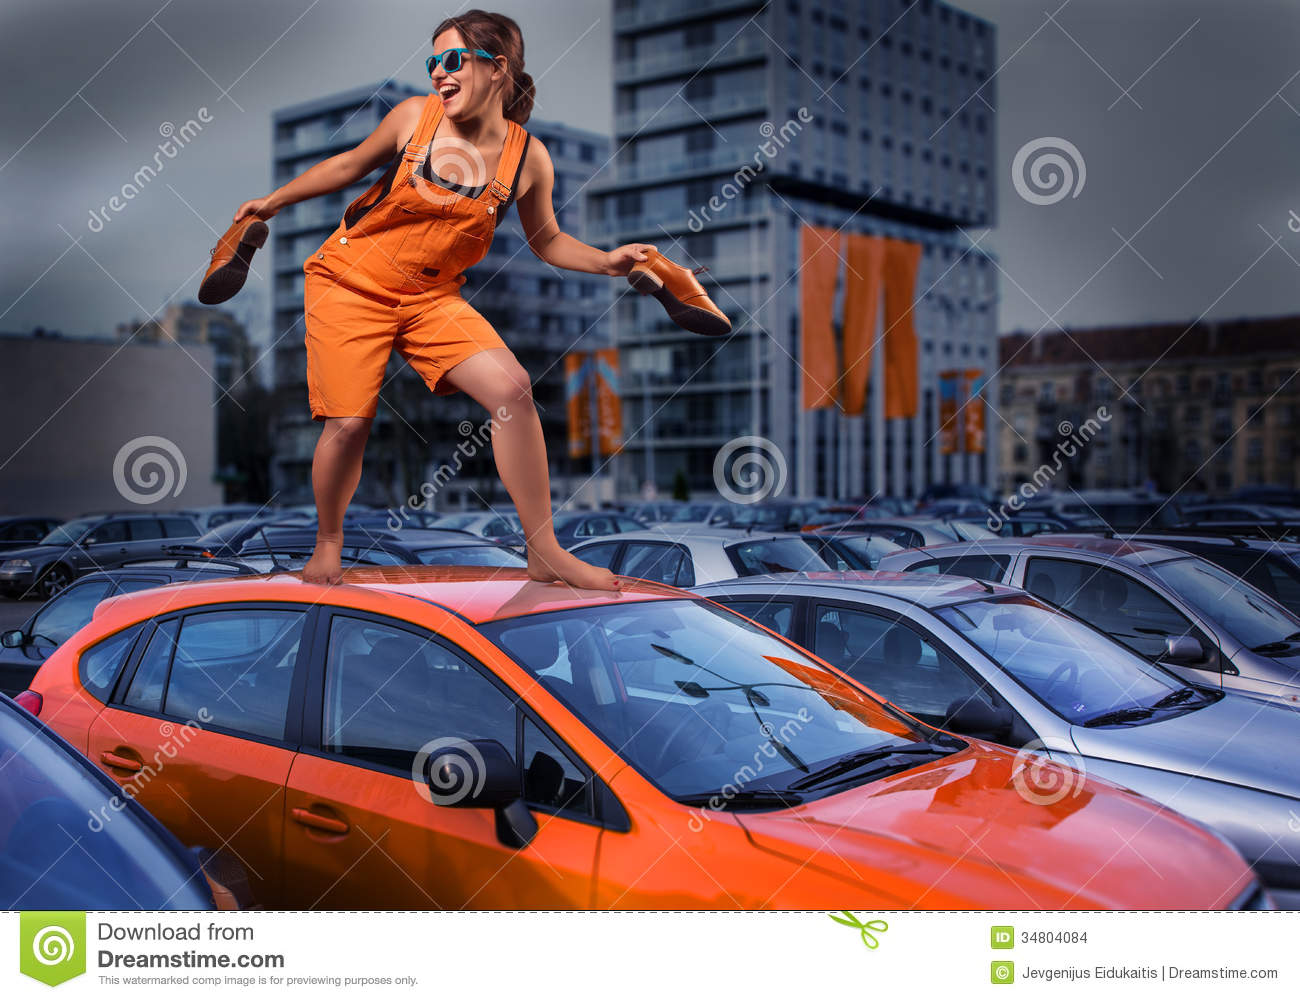 https://thumbs.dreamstime.com/z/playful-stylish-girl-orange-overalls-standing-car-roof-parking-lot-unique-person-young-dressed-barefoot-top-34804084.jpg